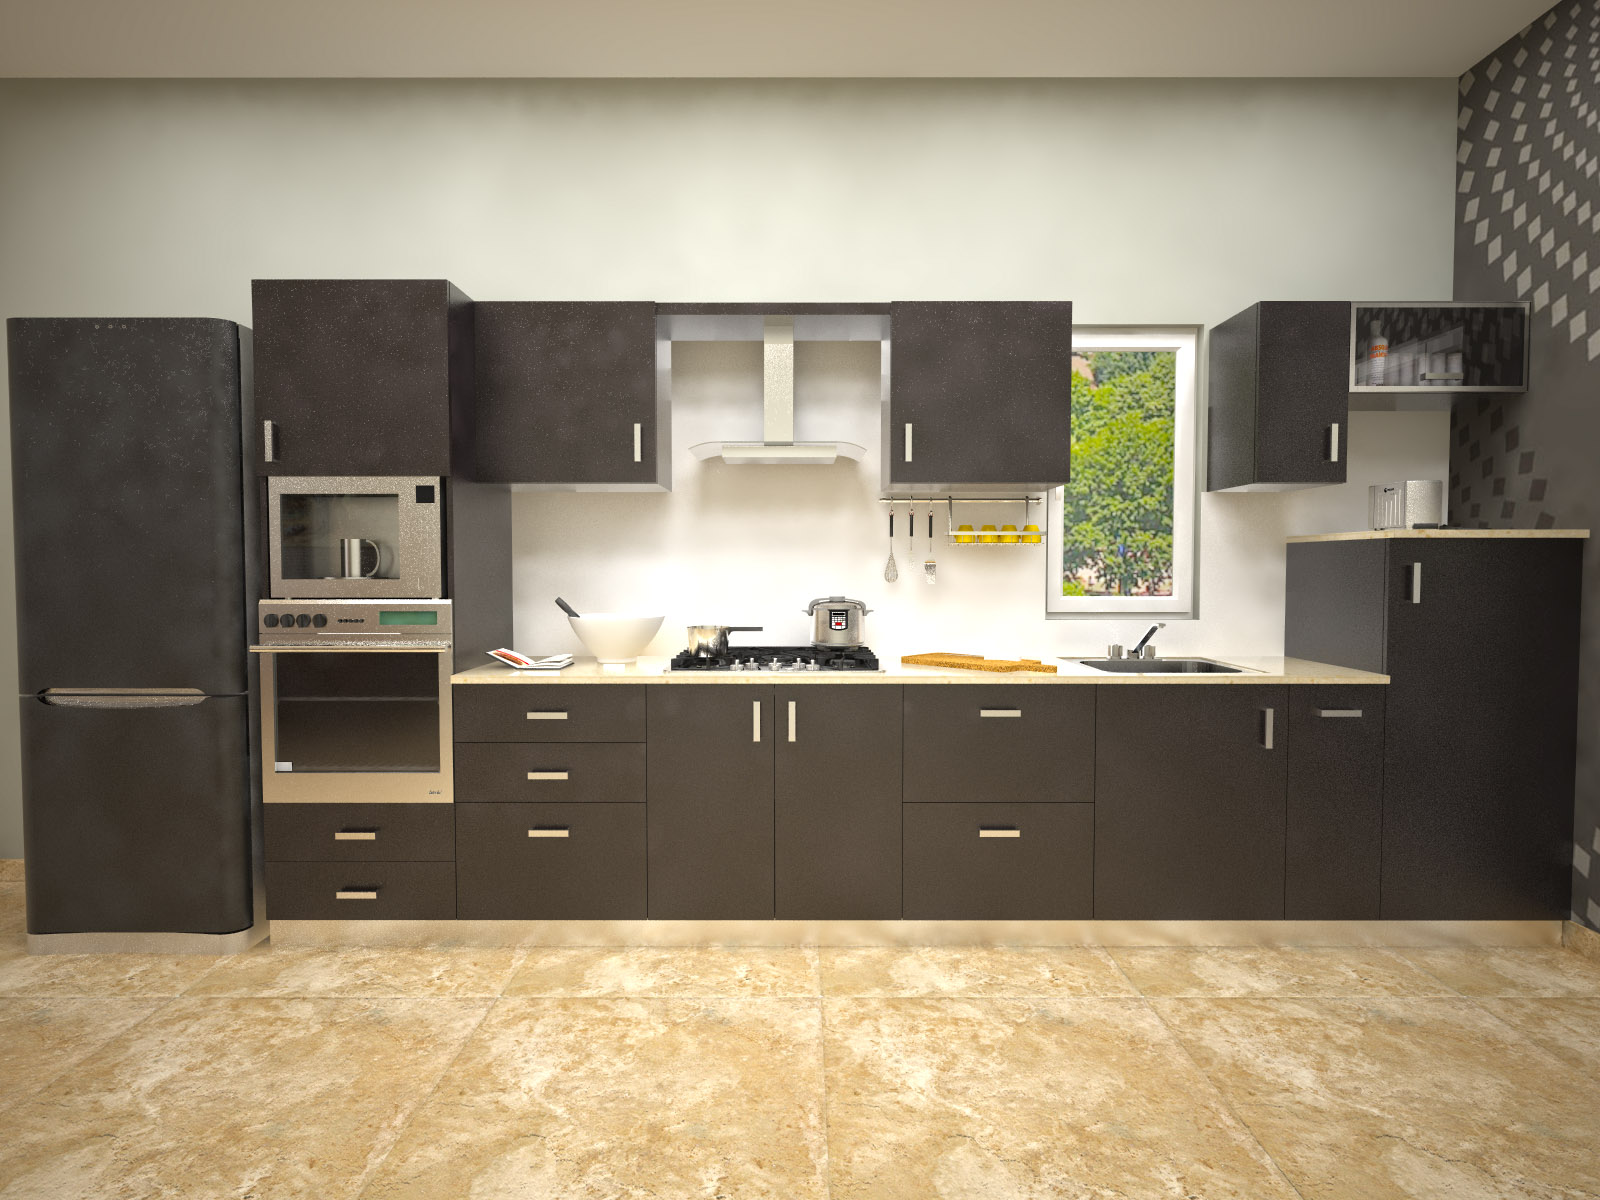 Aamoda kitchen glossy laminated indian parallel kitchen for Best material for kitchen cabinets in india